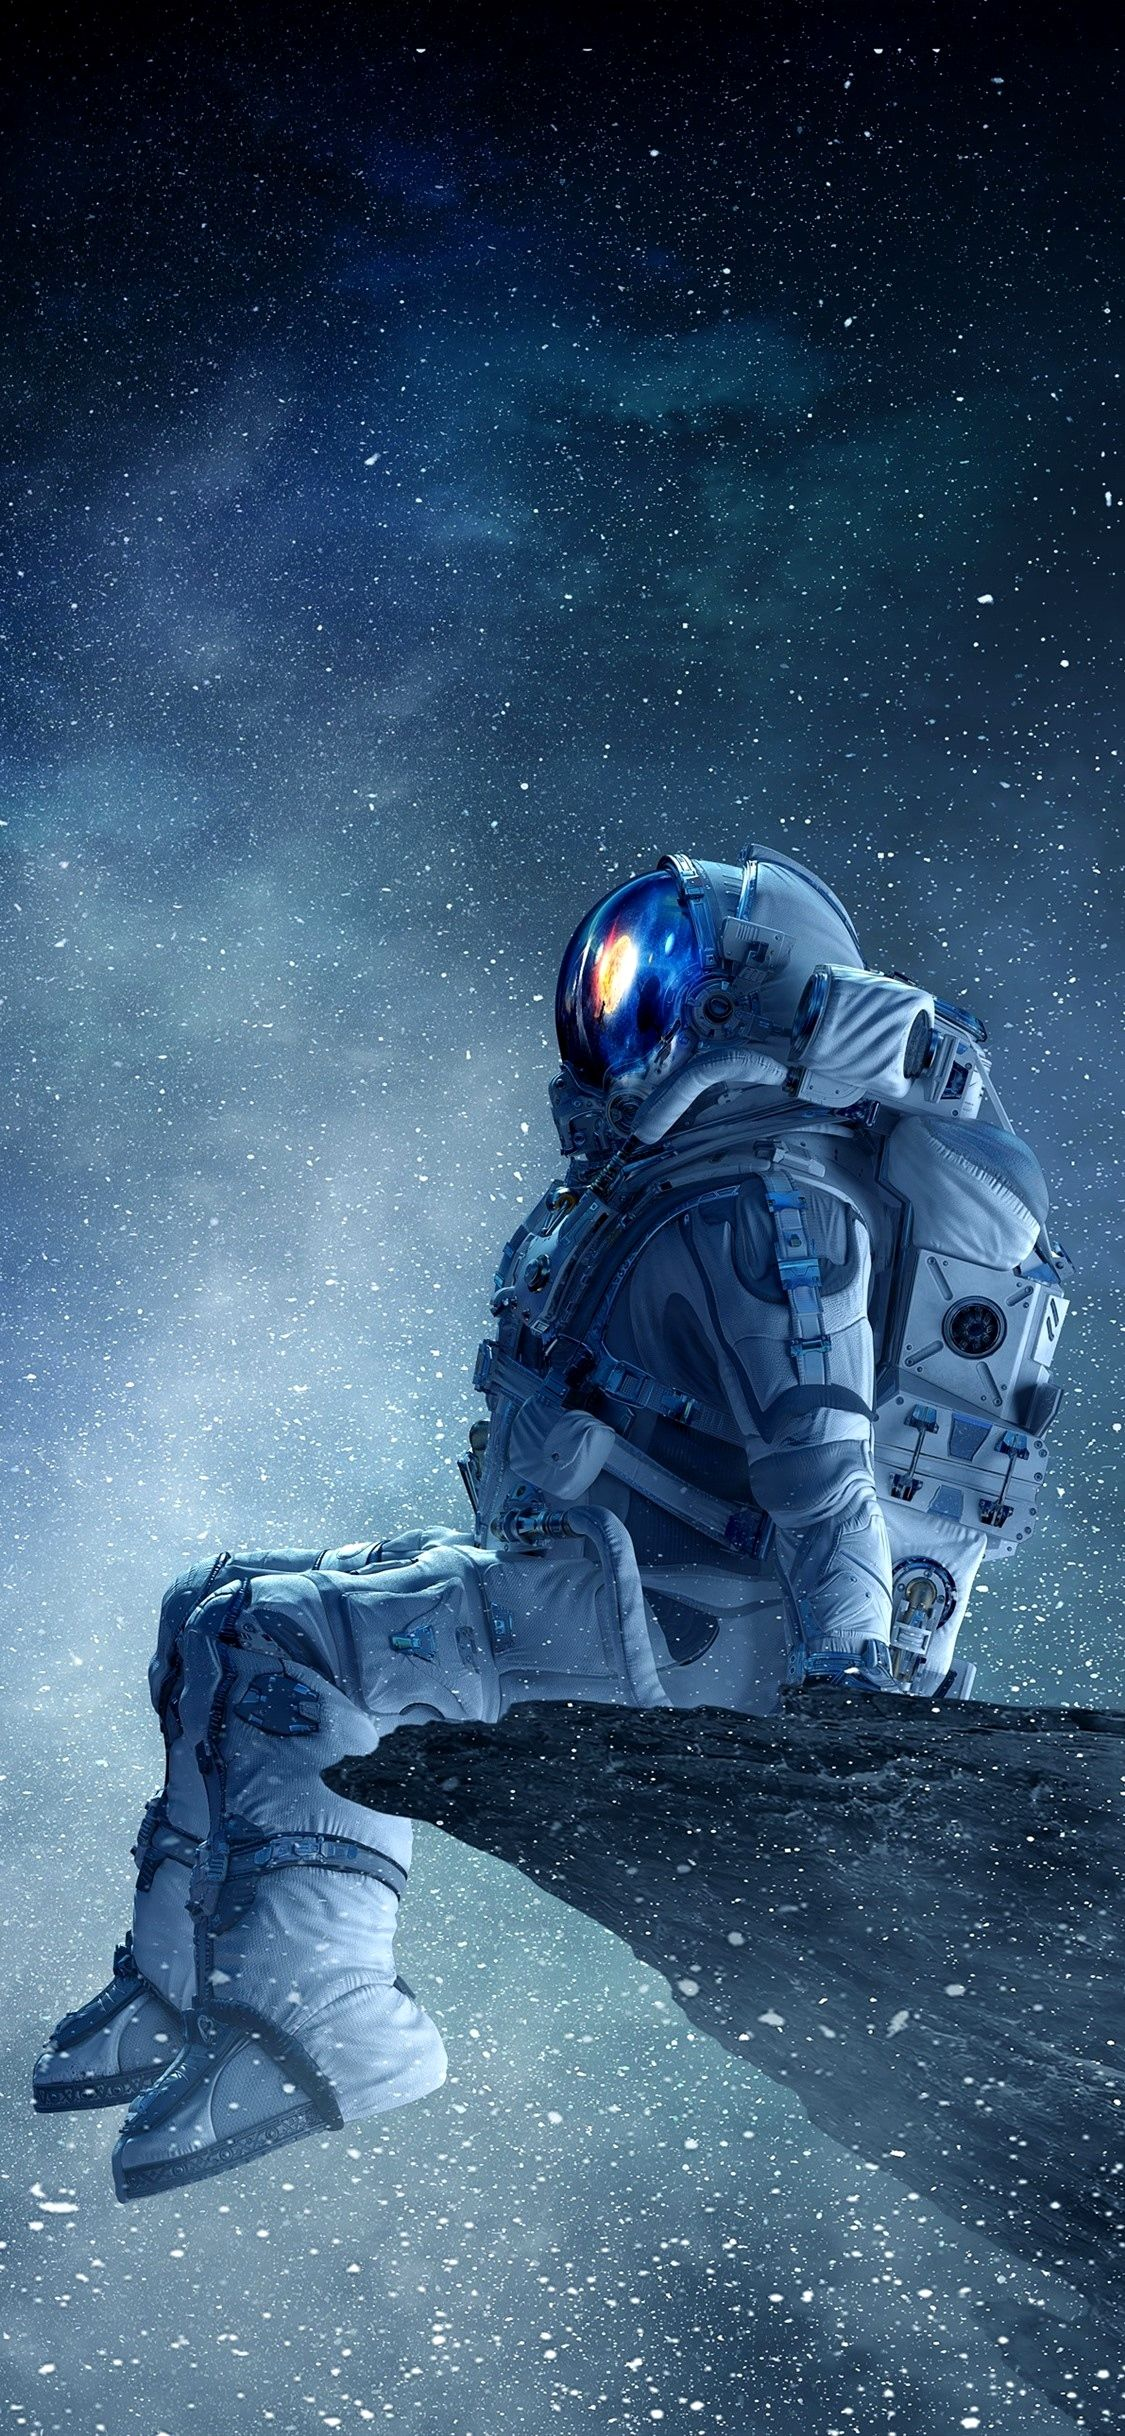 Astronaut Wallpaper 4k Iphone Ideas In 2020 Space Artwork Astronaut Wallpaper Astronaut Art